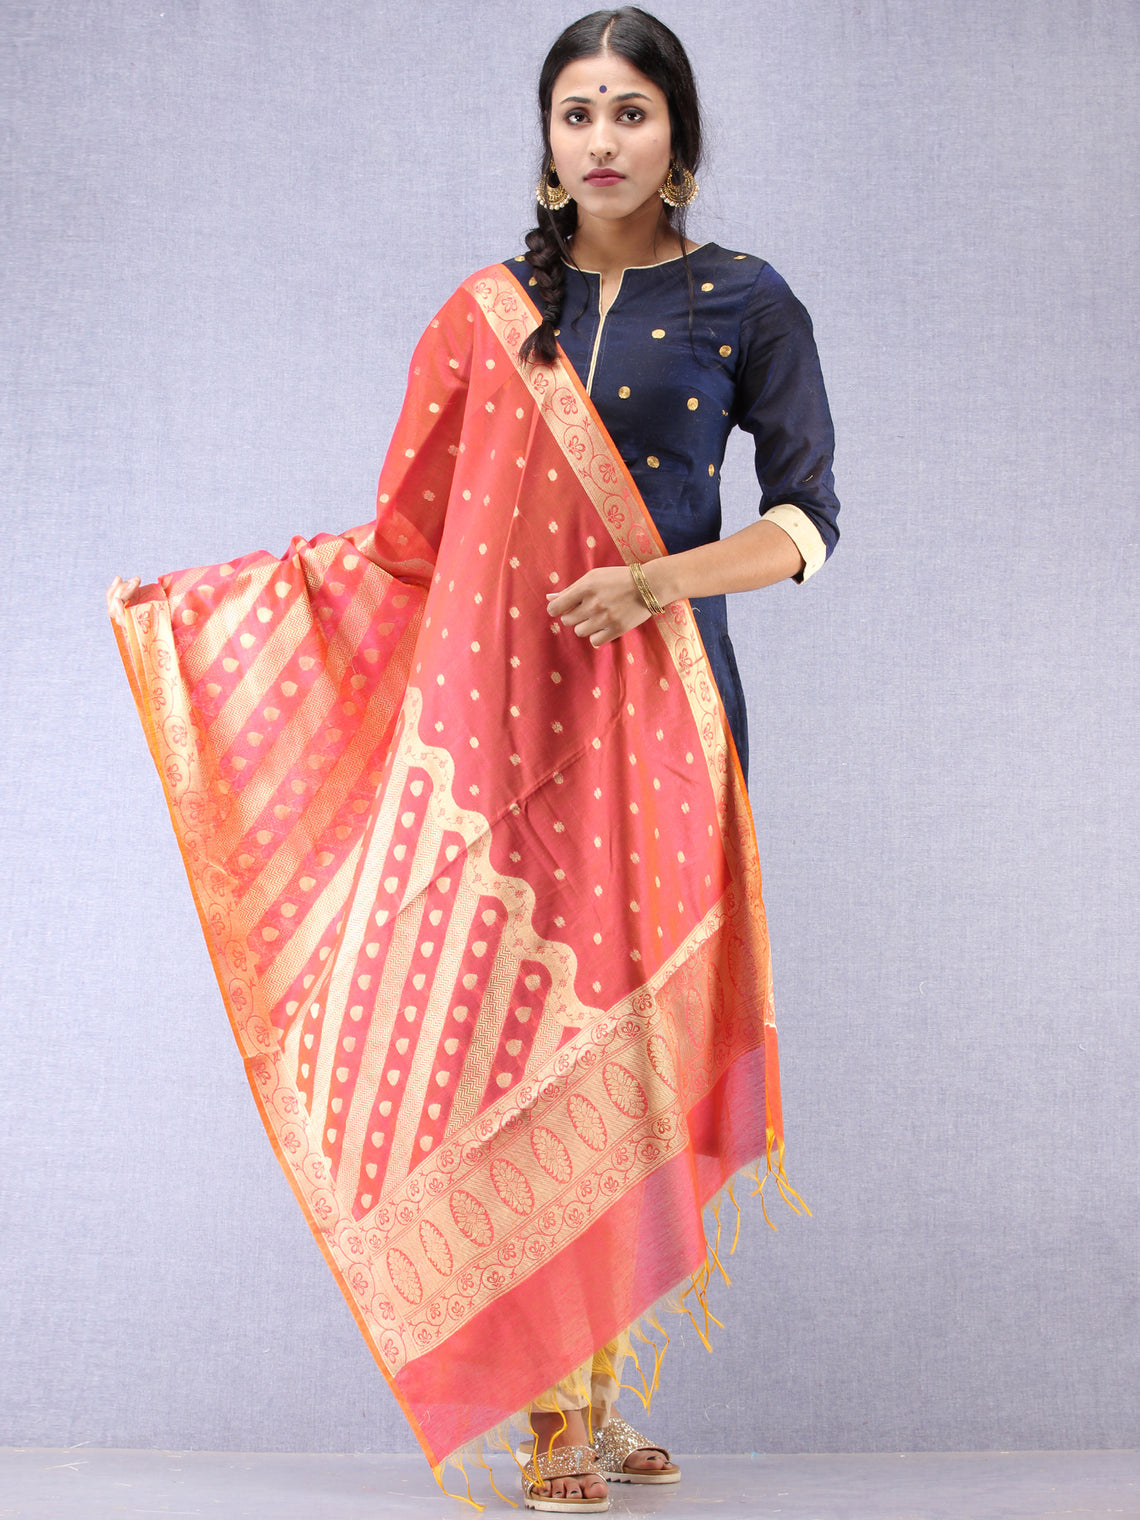 Banarasi Chanderi Dupatta With Zari Work - Red & Gold - D04170816